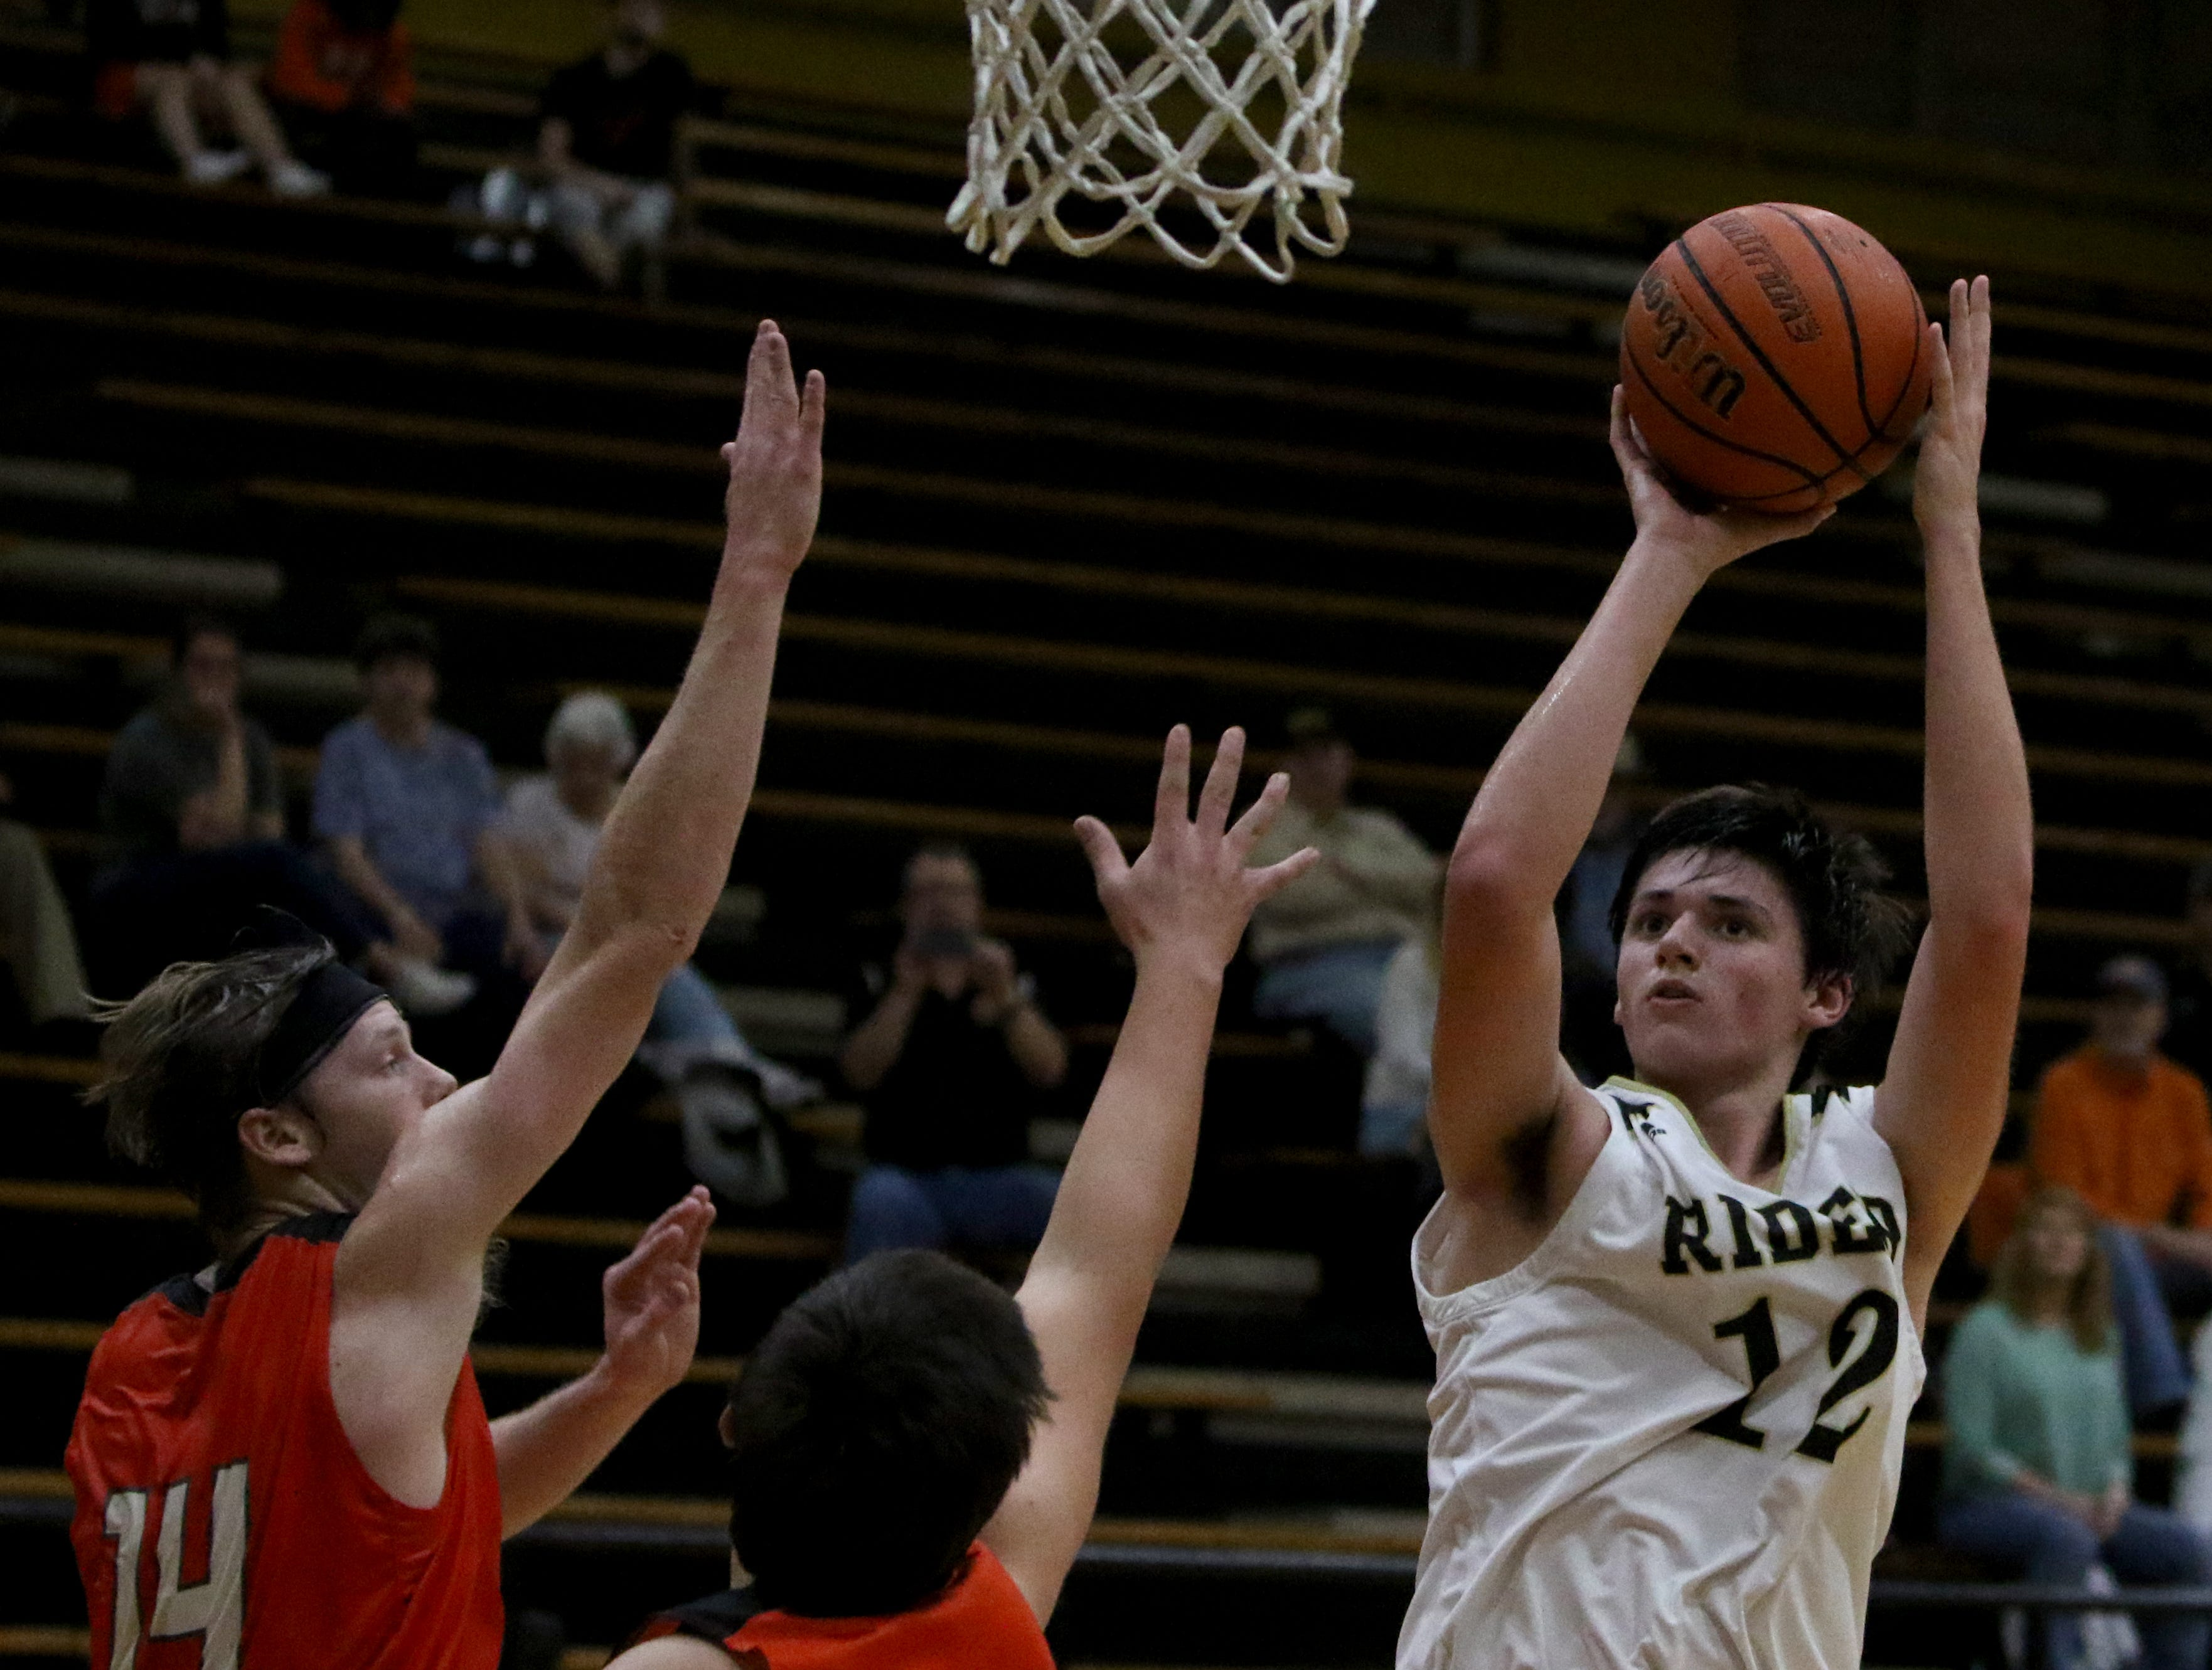 Rider's Ty Caswell shoots over Aledo defenders Tuesday, Feb. 5, 2019, at Rider. The Raiders defeated the Bearcats 64-51.